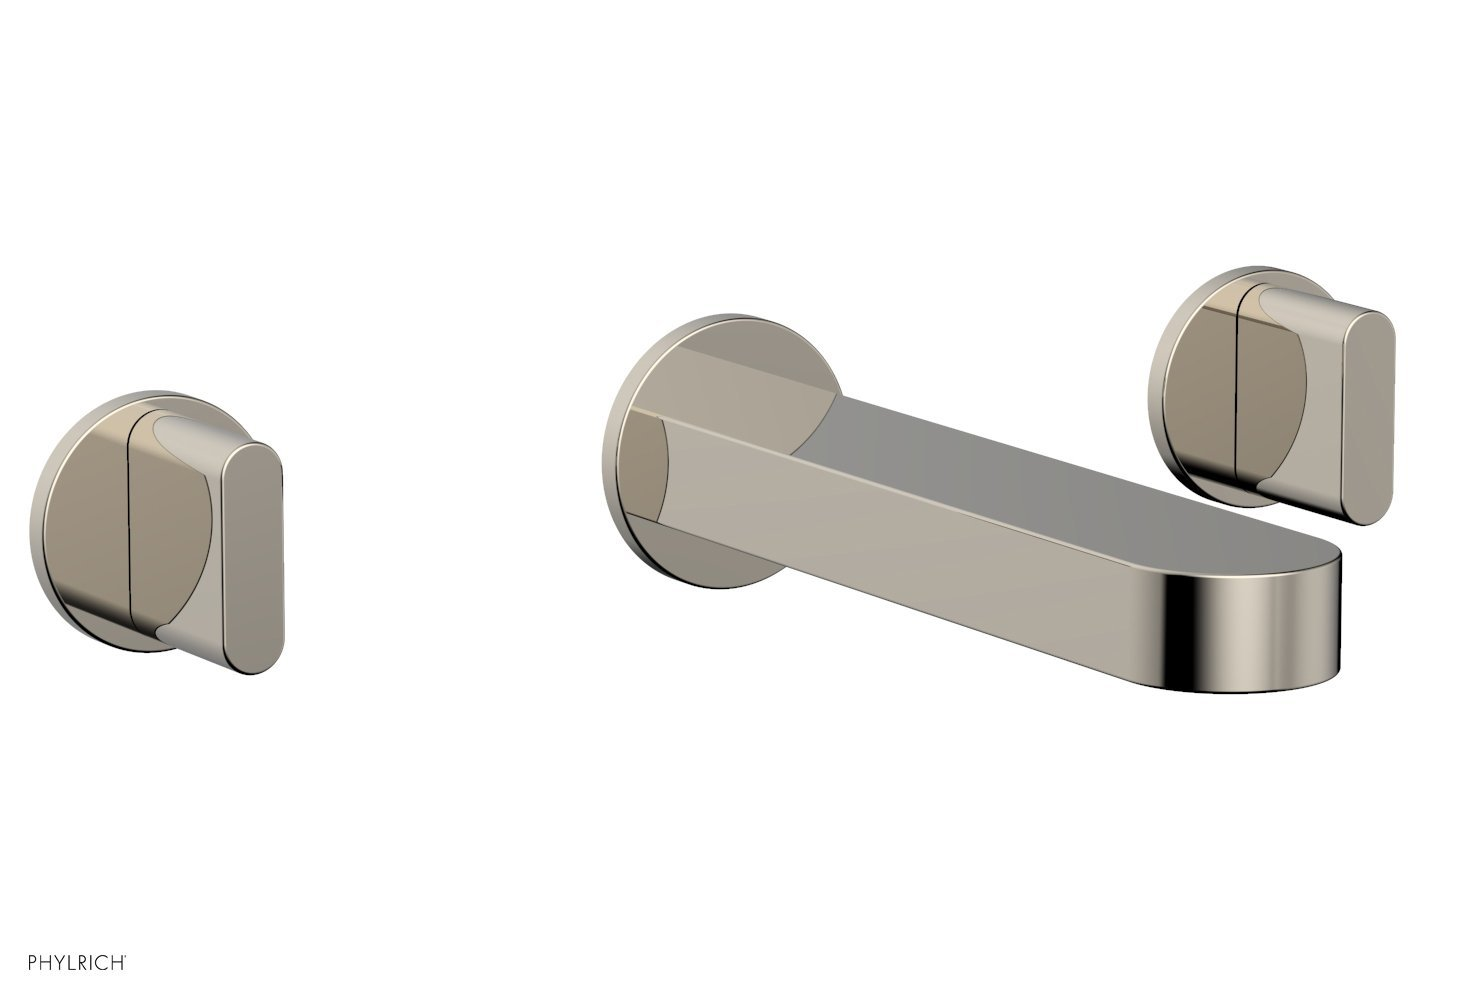 Phylrich 183-11-014 ROND Wall Lavatory Set - Blade Handles - Polished Nickel